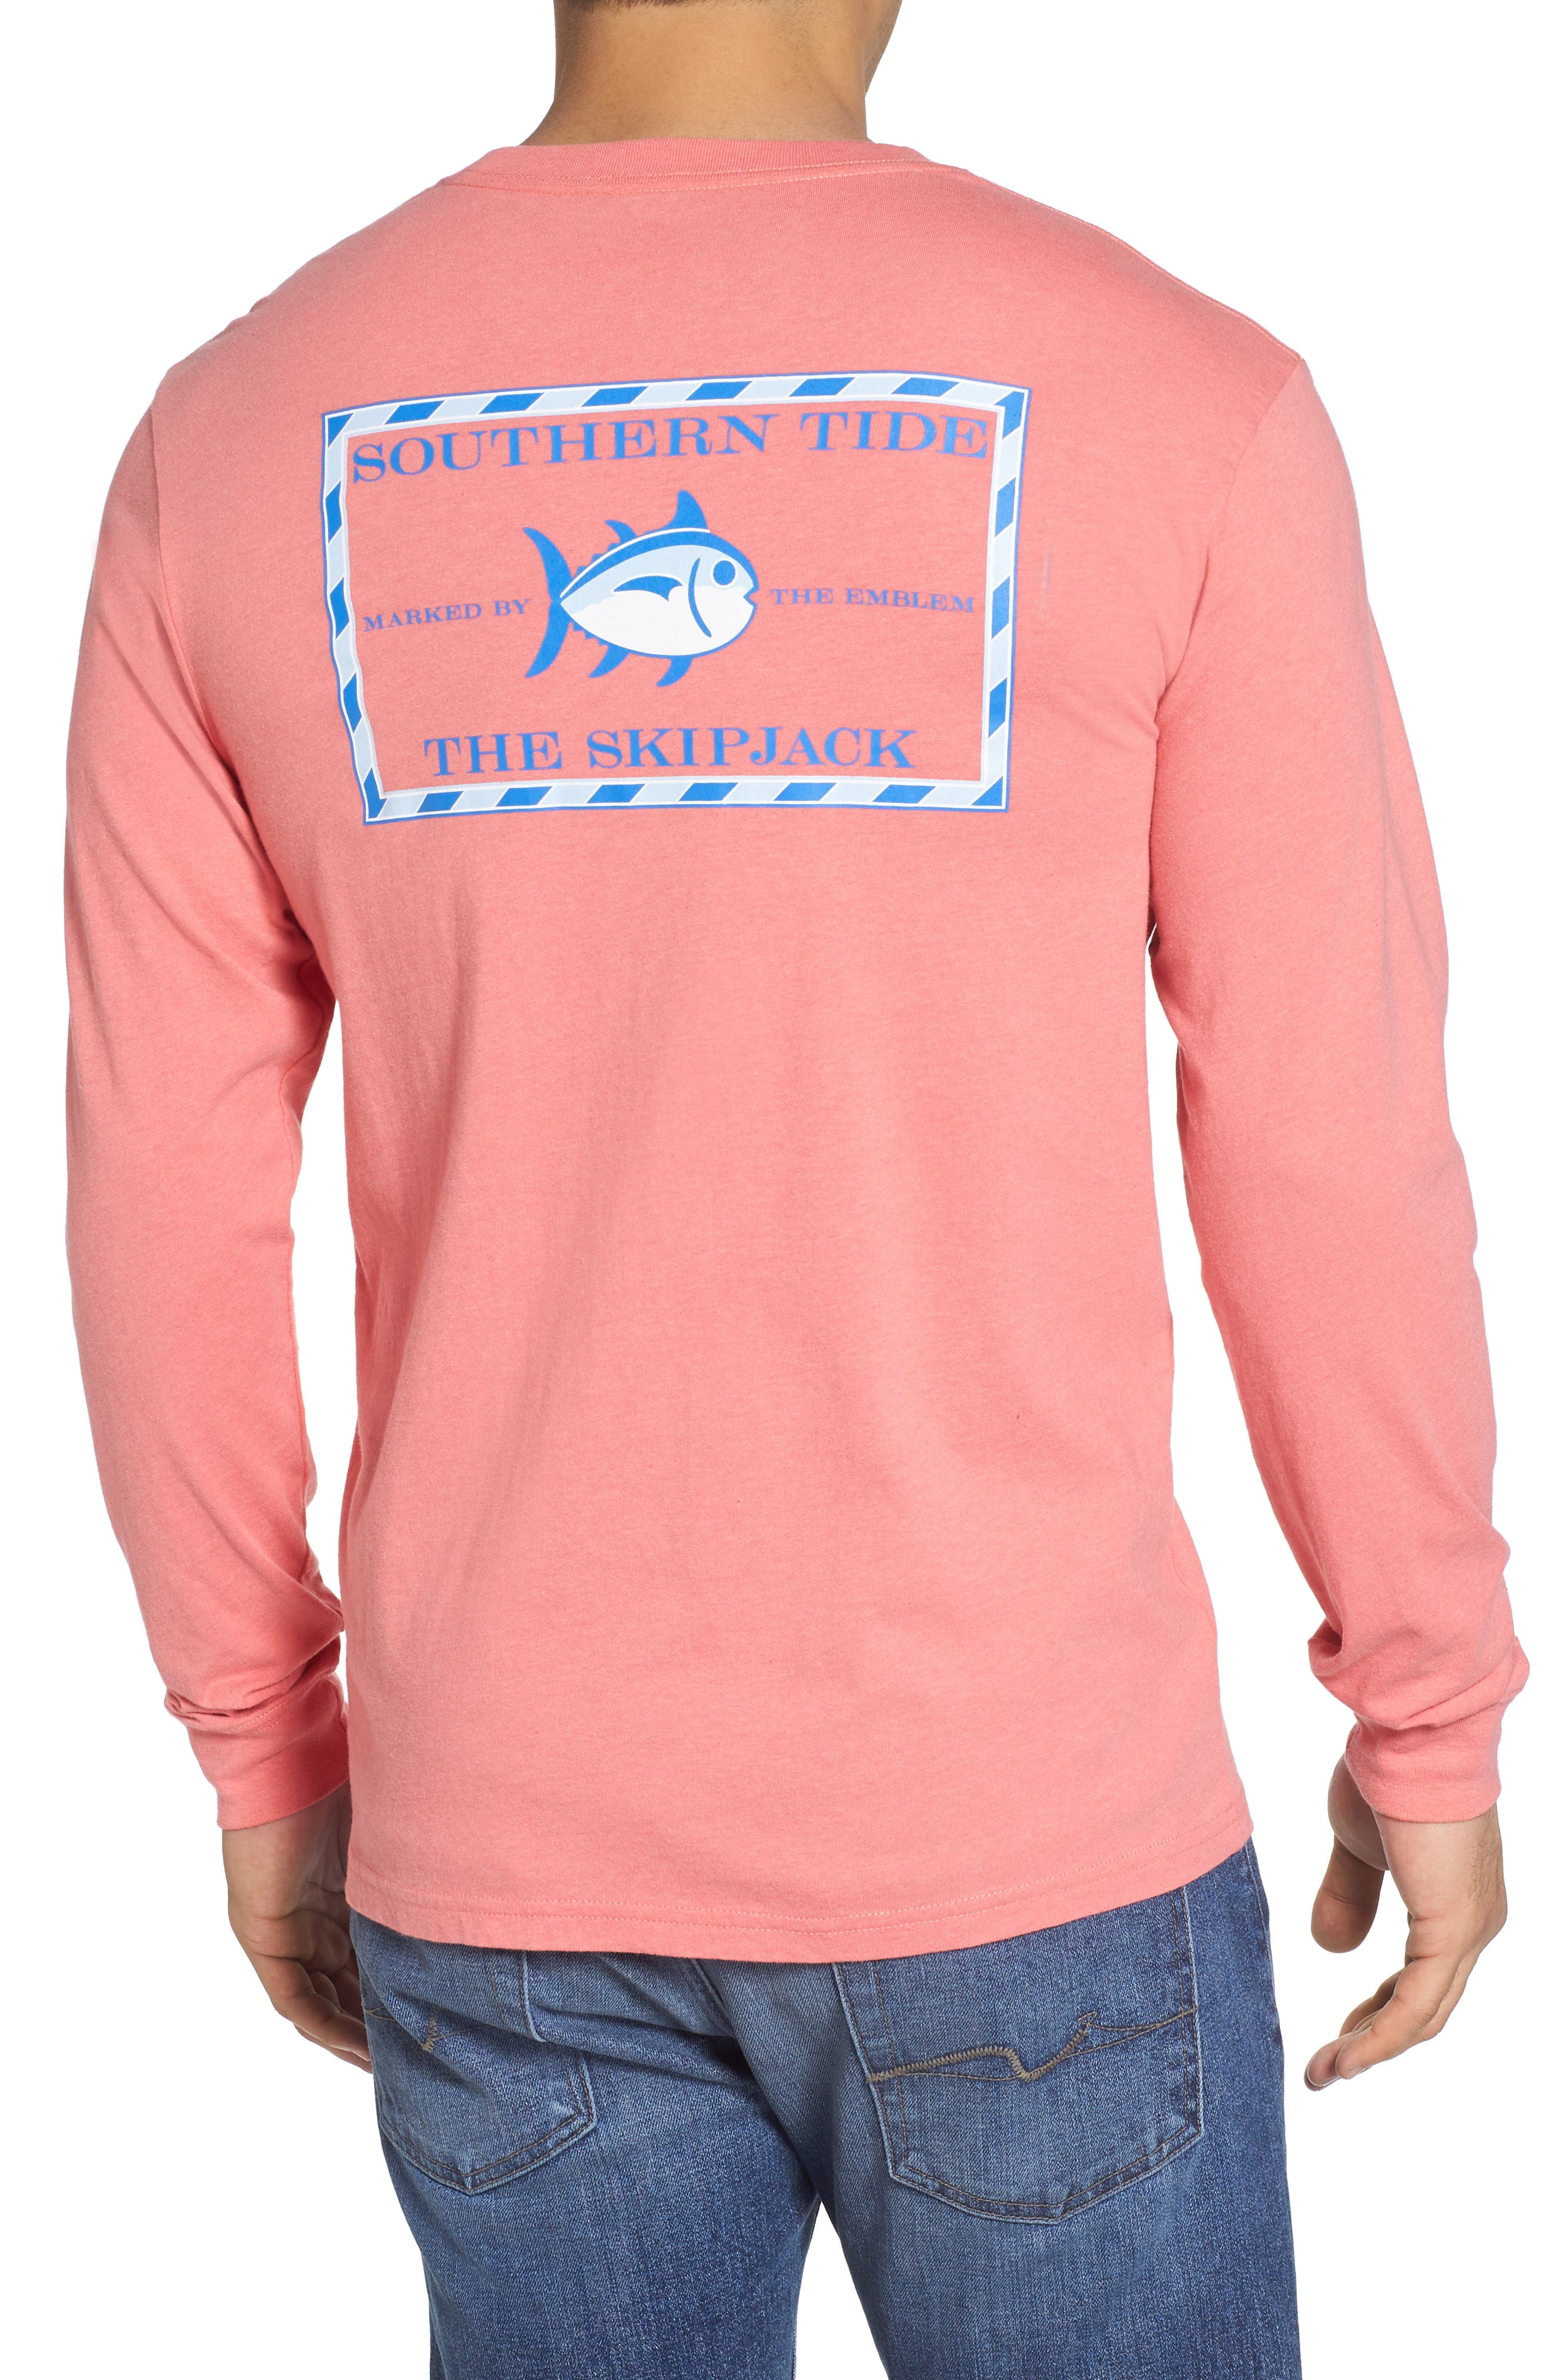 Southern Tide 'Skipjack' Long Sleeve Graphic T-Shirt